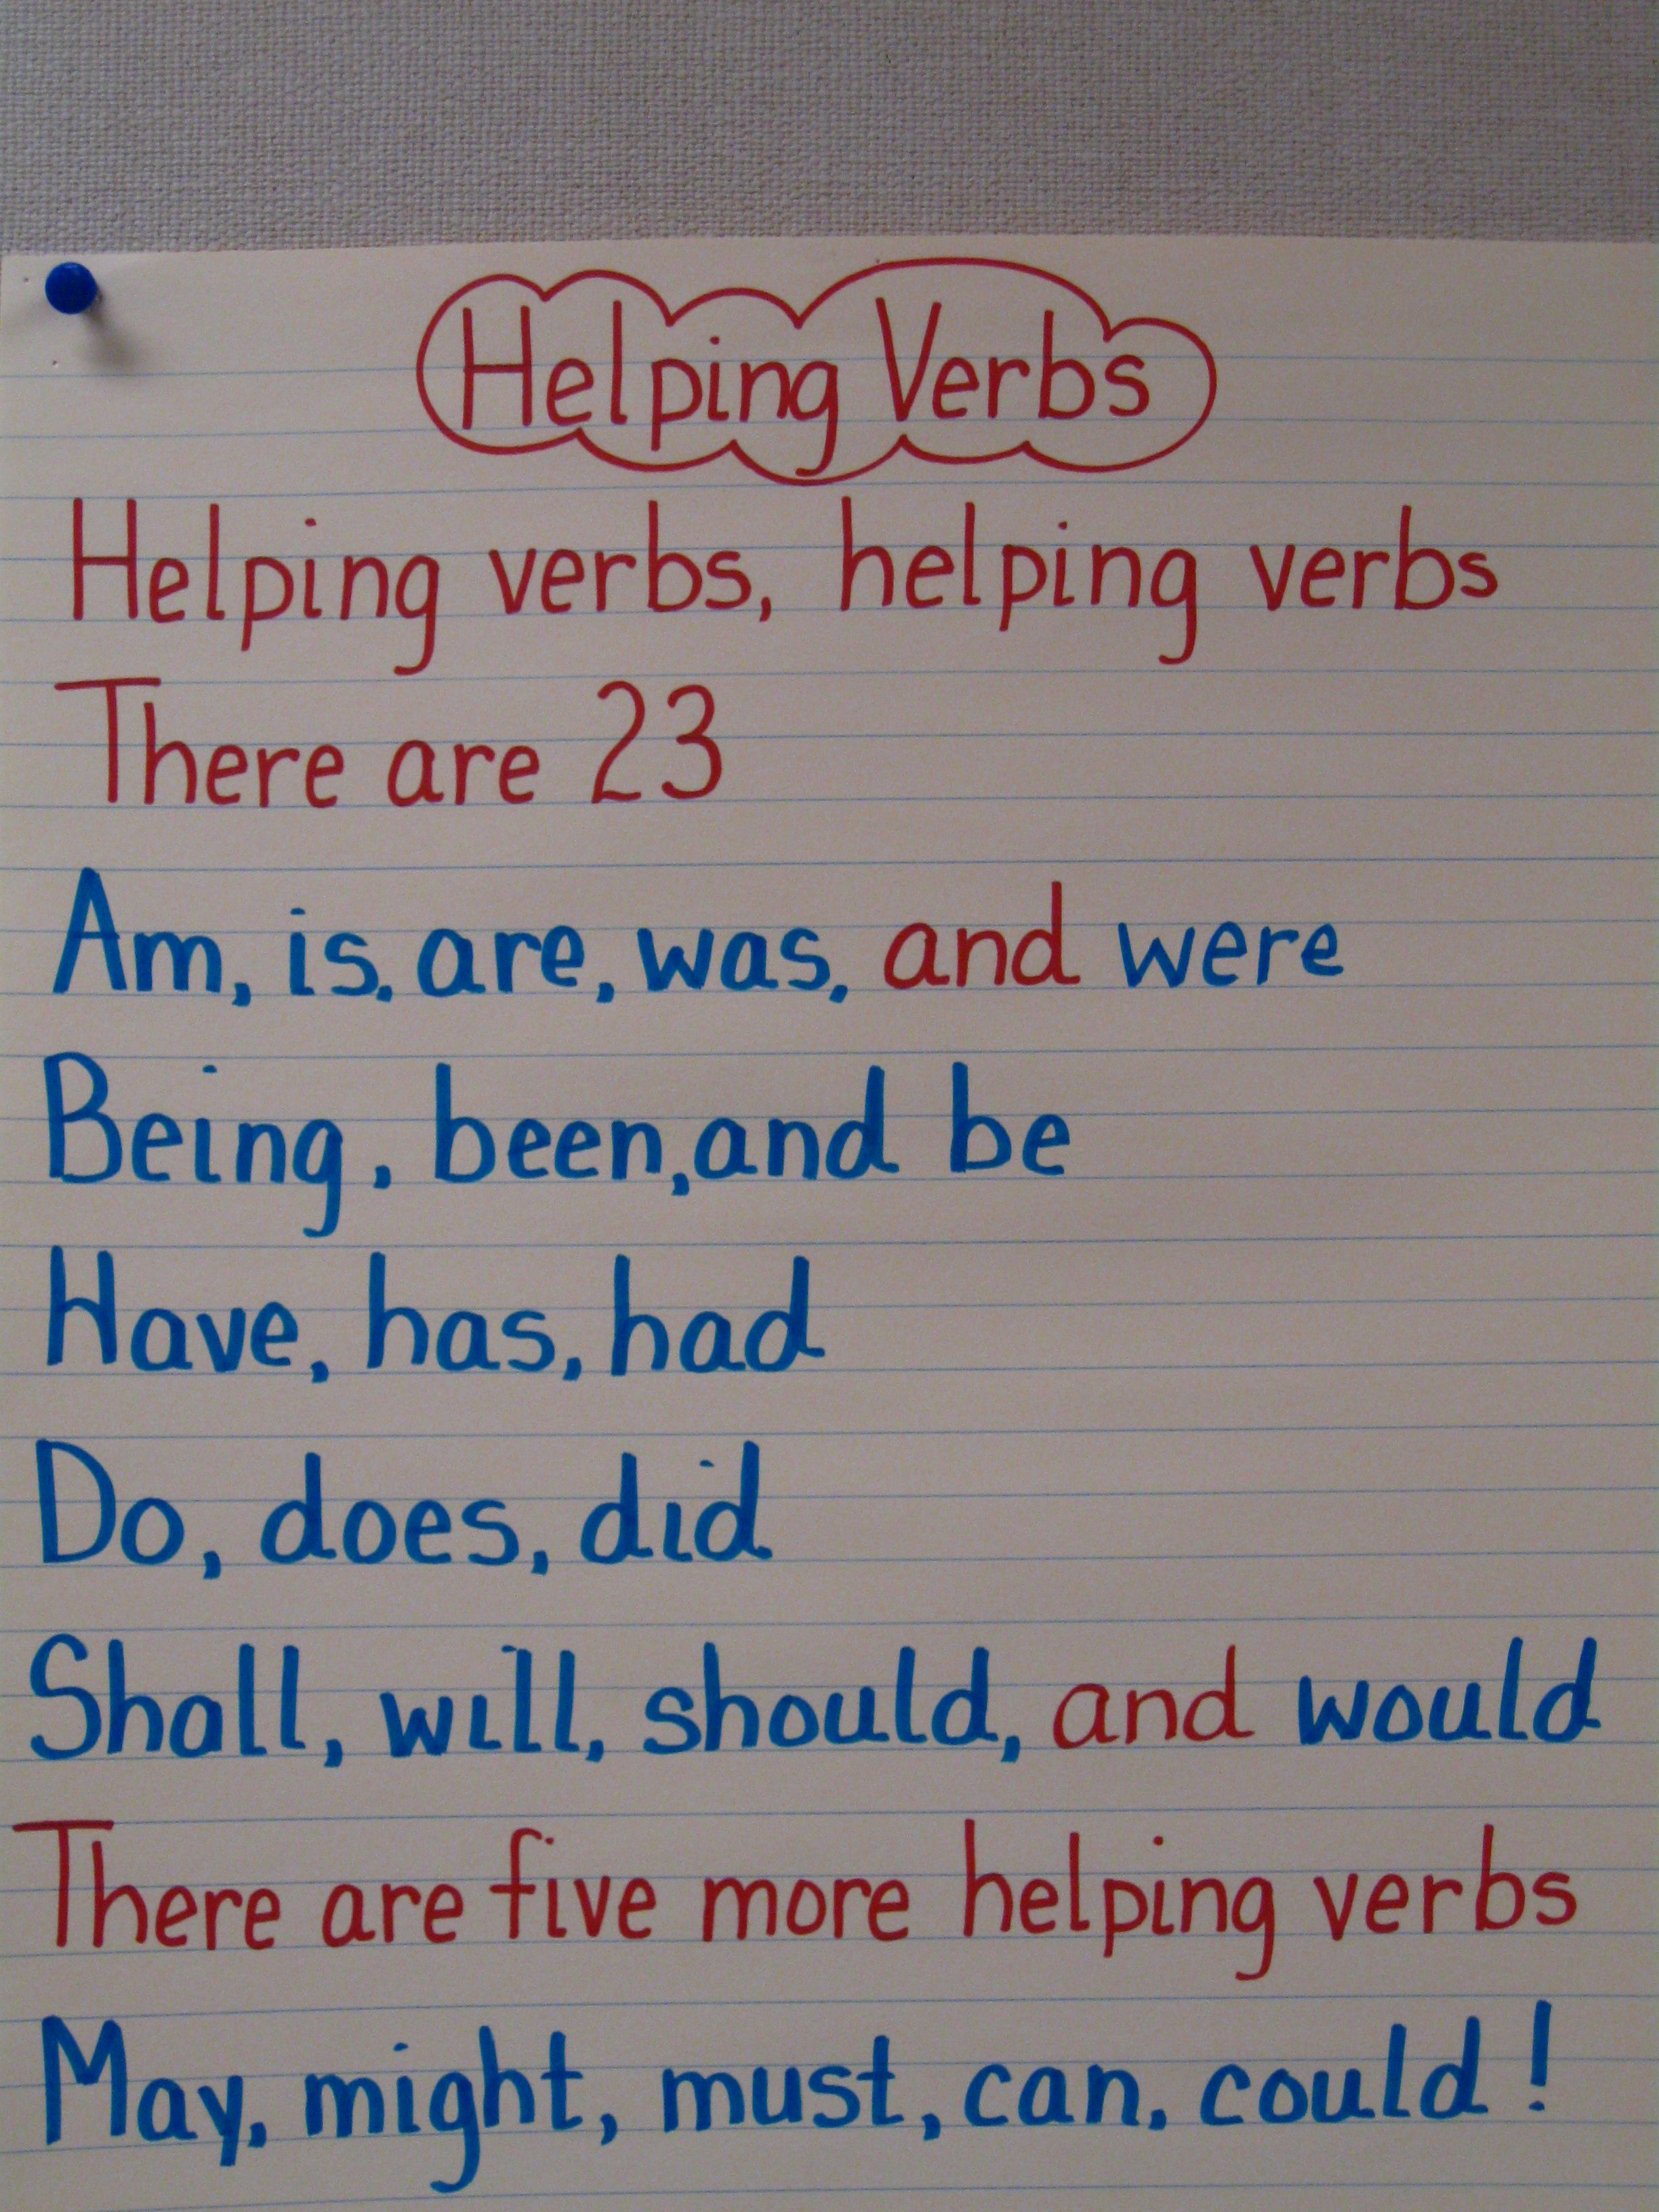 Helping Verbs And Yes I Have Sung This With My 8th Graders This Goes To Jingle Bells Btw Helping Verbs Teaching Writing Language Arts Lessons [ 3264 x 2448 Pixel ]